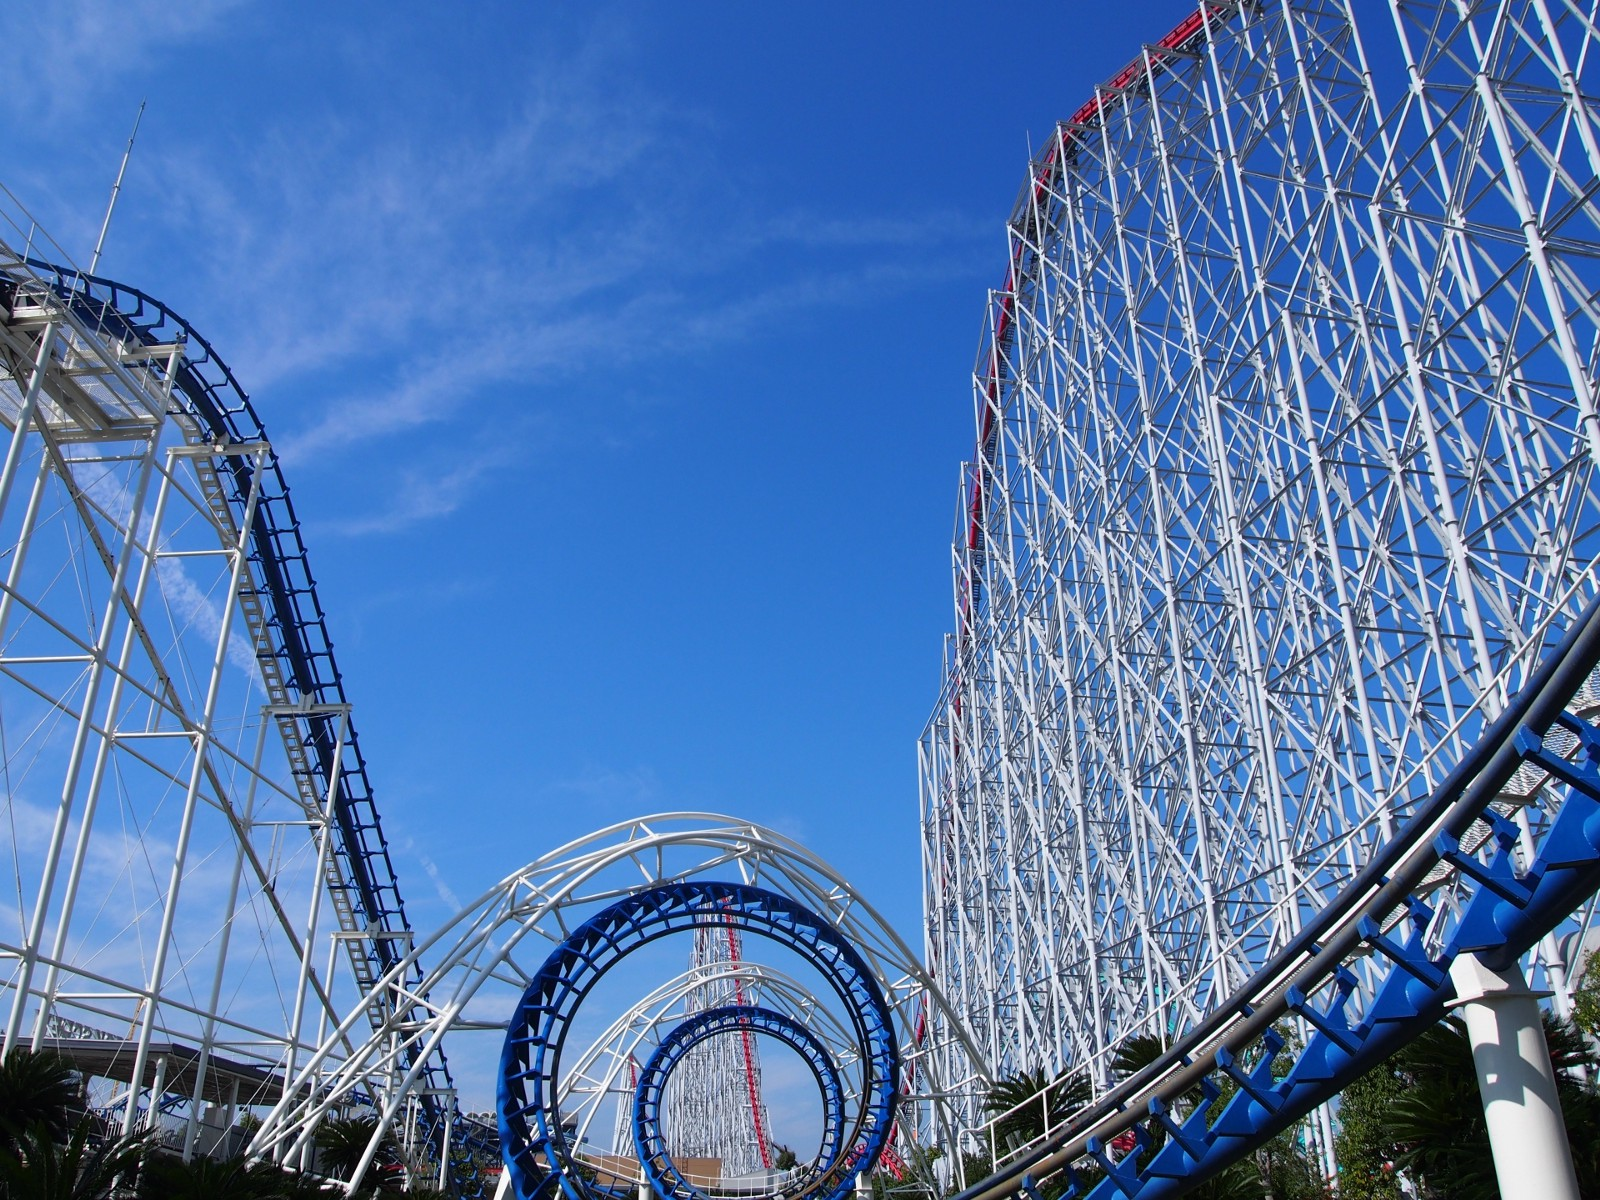 The monster roller coaster at Nagashima Spaland